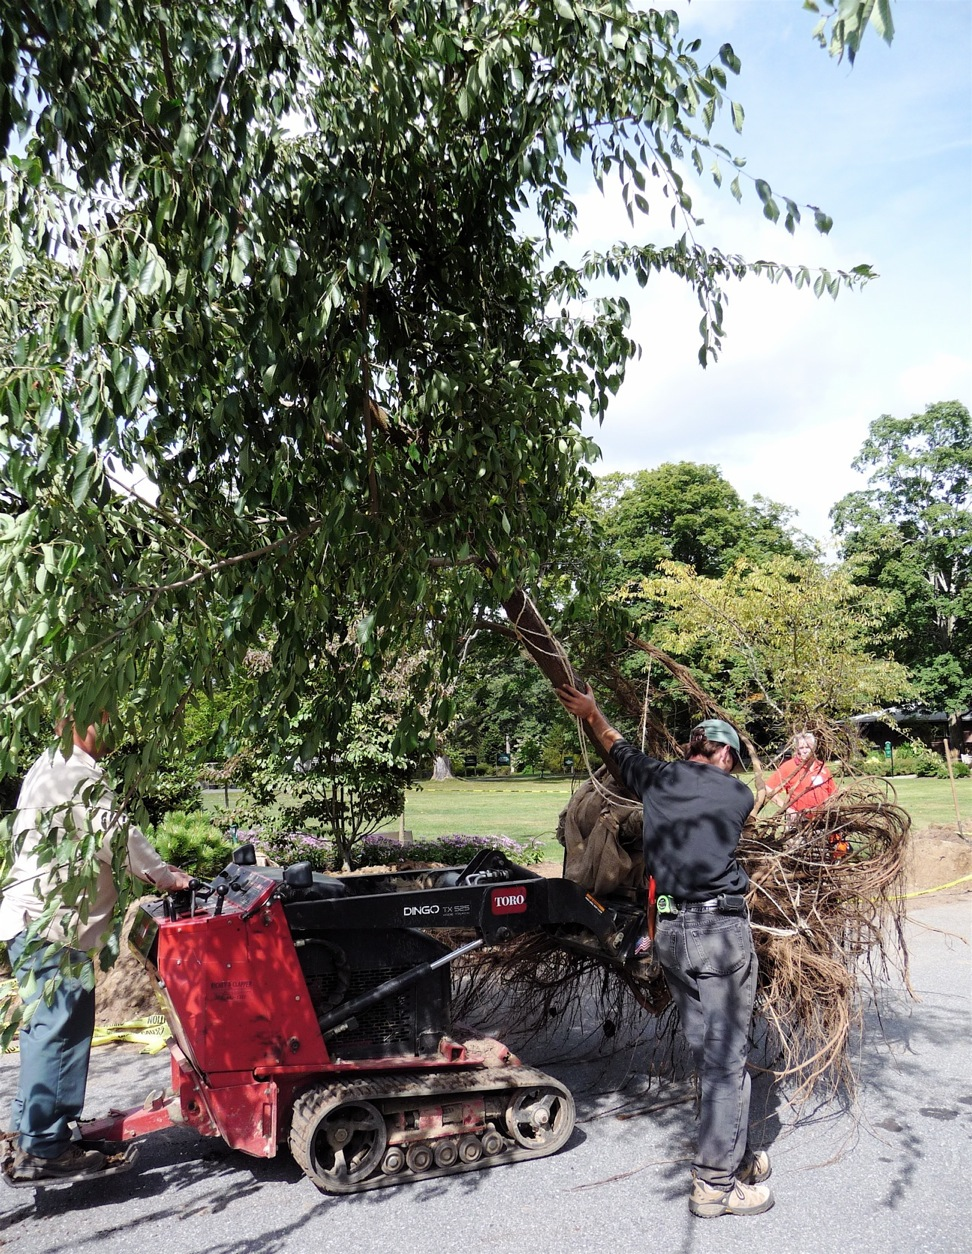 Elm tree on the move.  Stabilizing the trunk and moving slowly keeps the job safe.